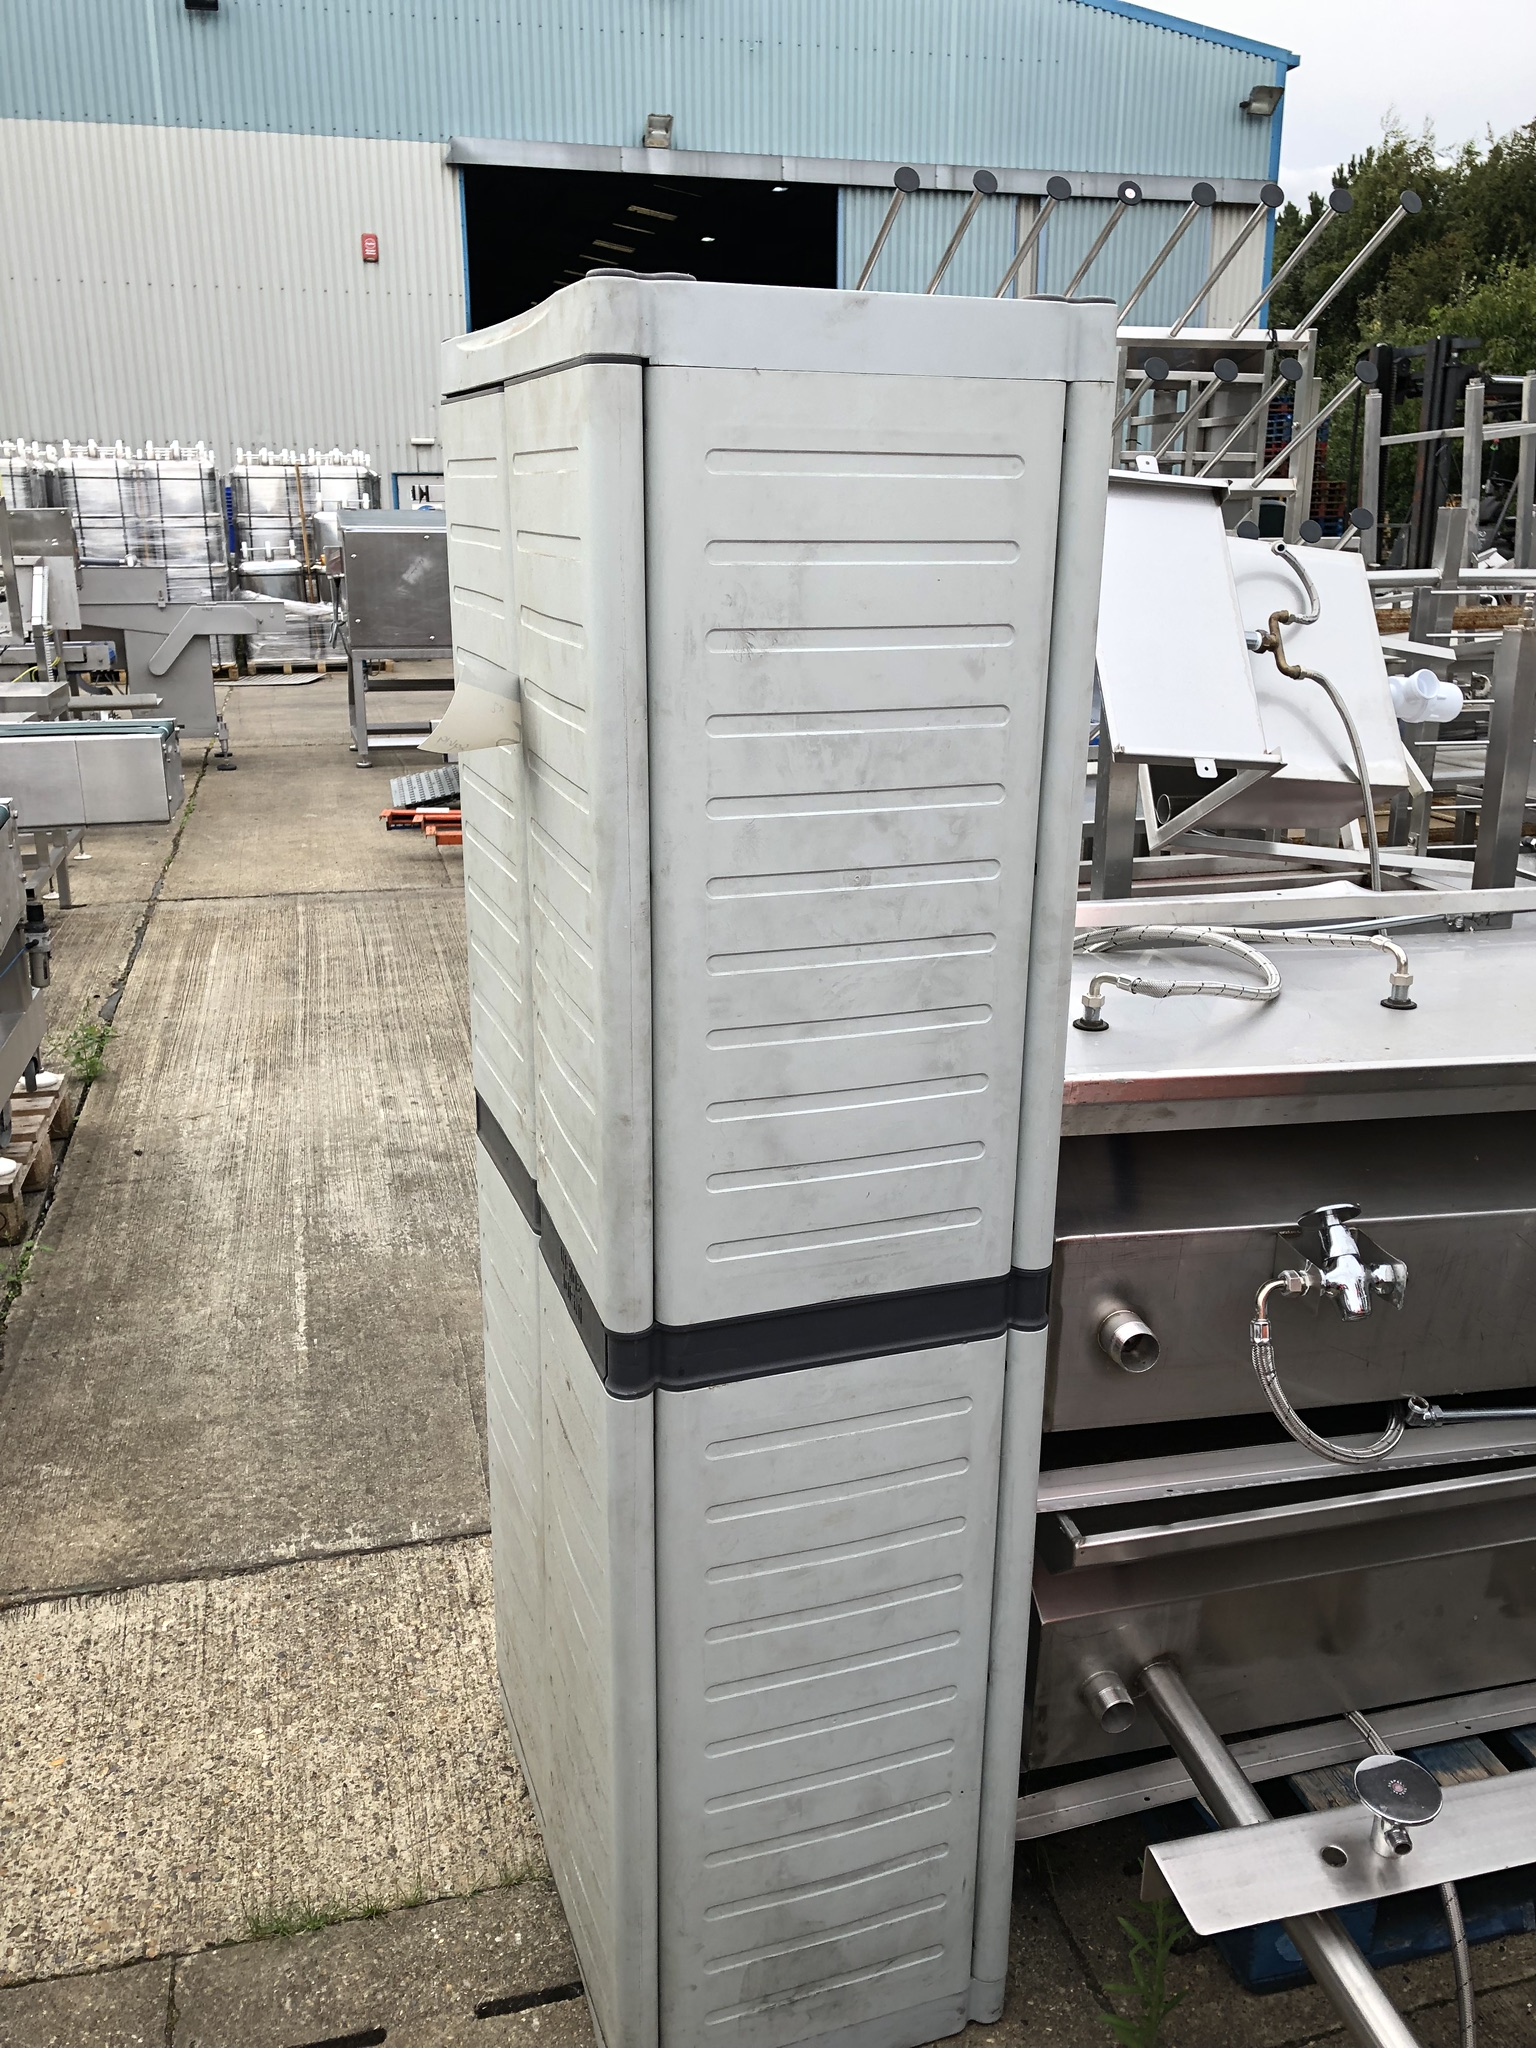 Two Plastic Cupboards, approx. 0.7m x 0.5m x 1.8m high, lift out charge - £20